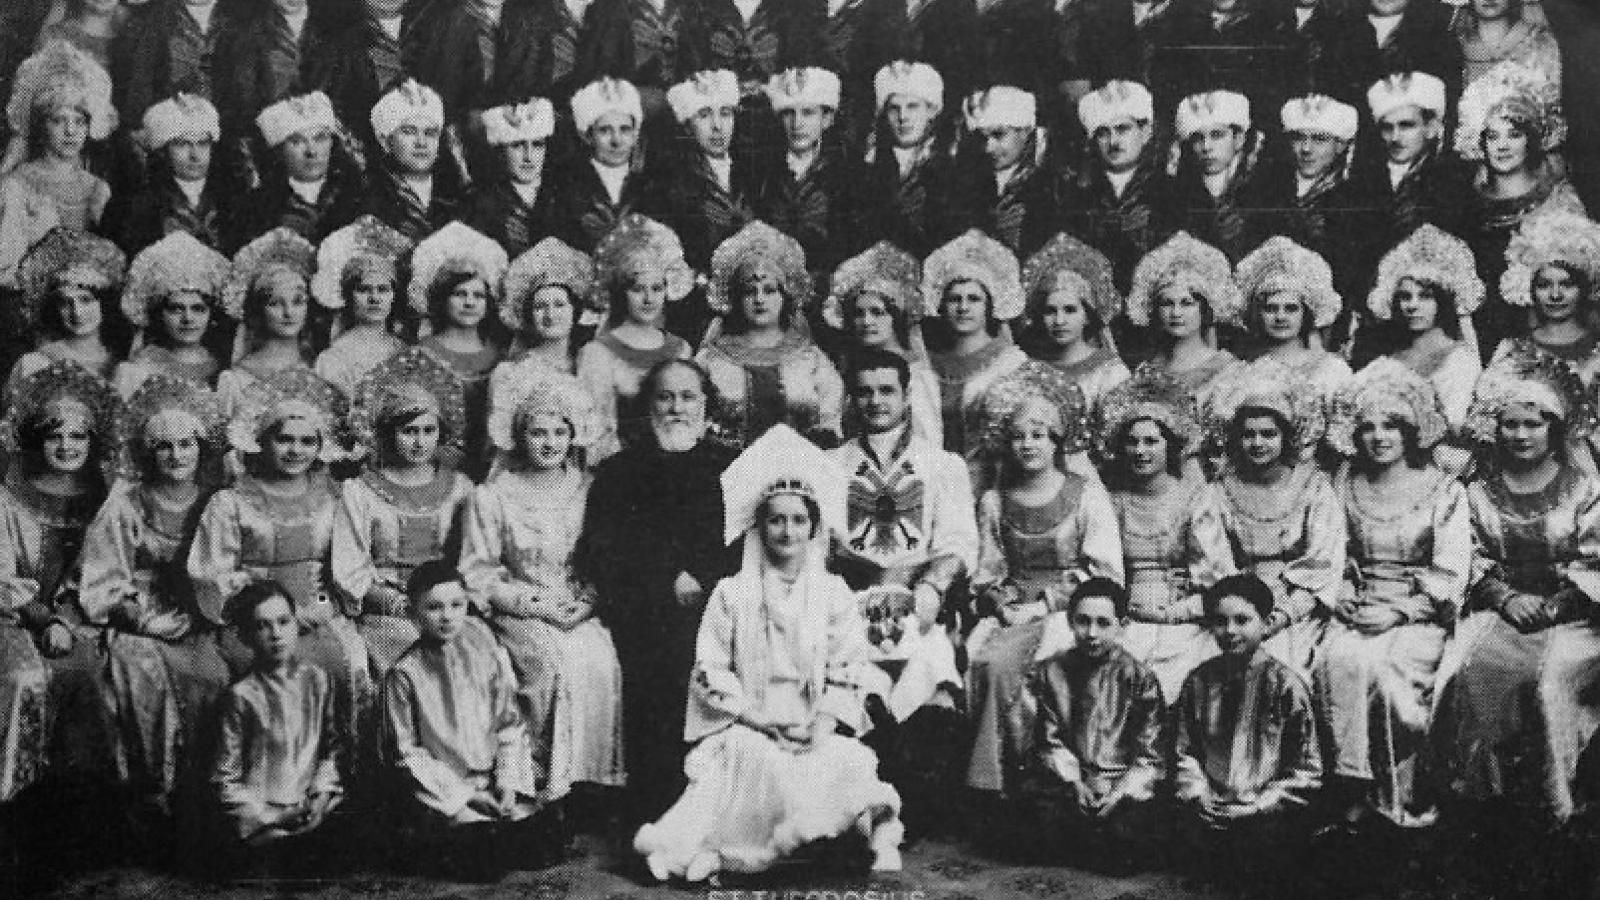 The St. Theodosius Russian Choir, 1932.